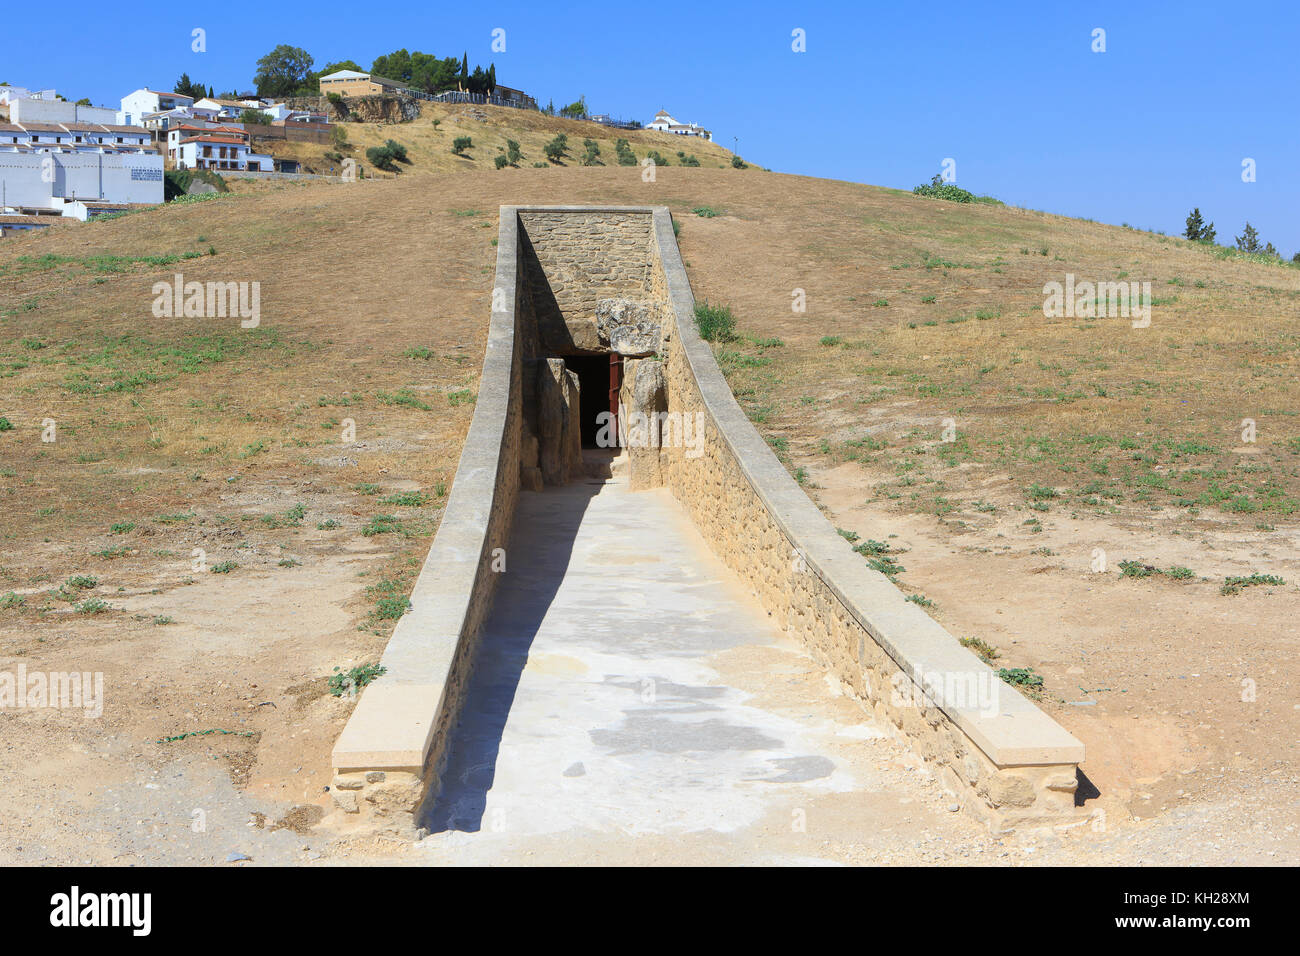 Entrance to the Dolmen de Viera, dating from the 3rd millennium BCE in Antequera, Spain - Stock Image